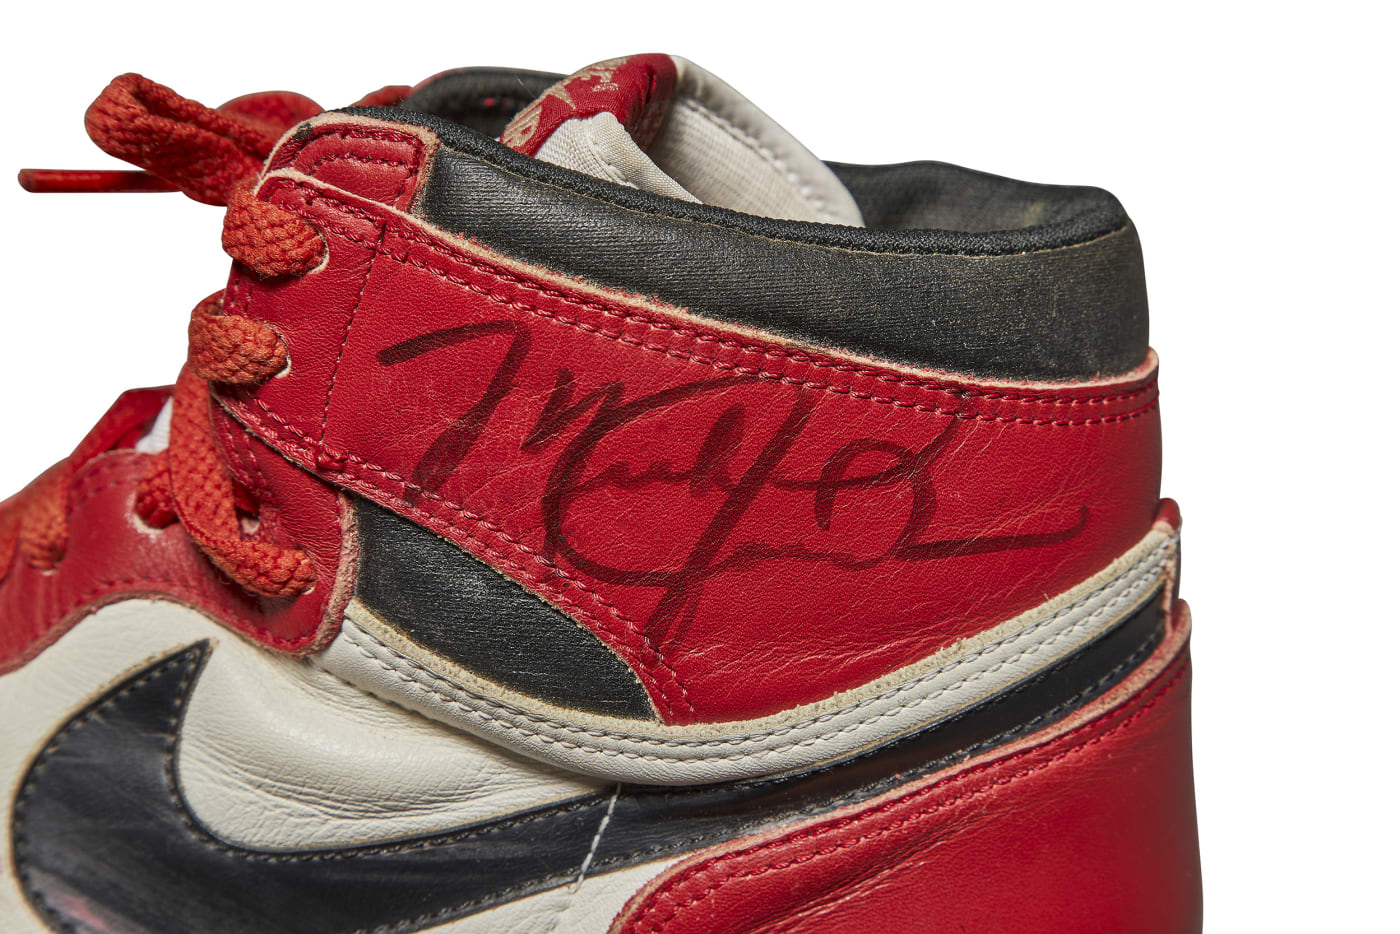 Air Jordan 1 OG Chicago 1985 Autographed